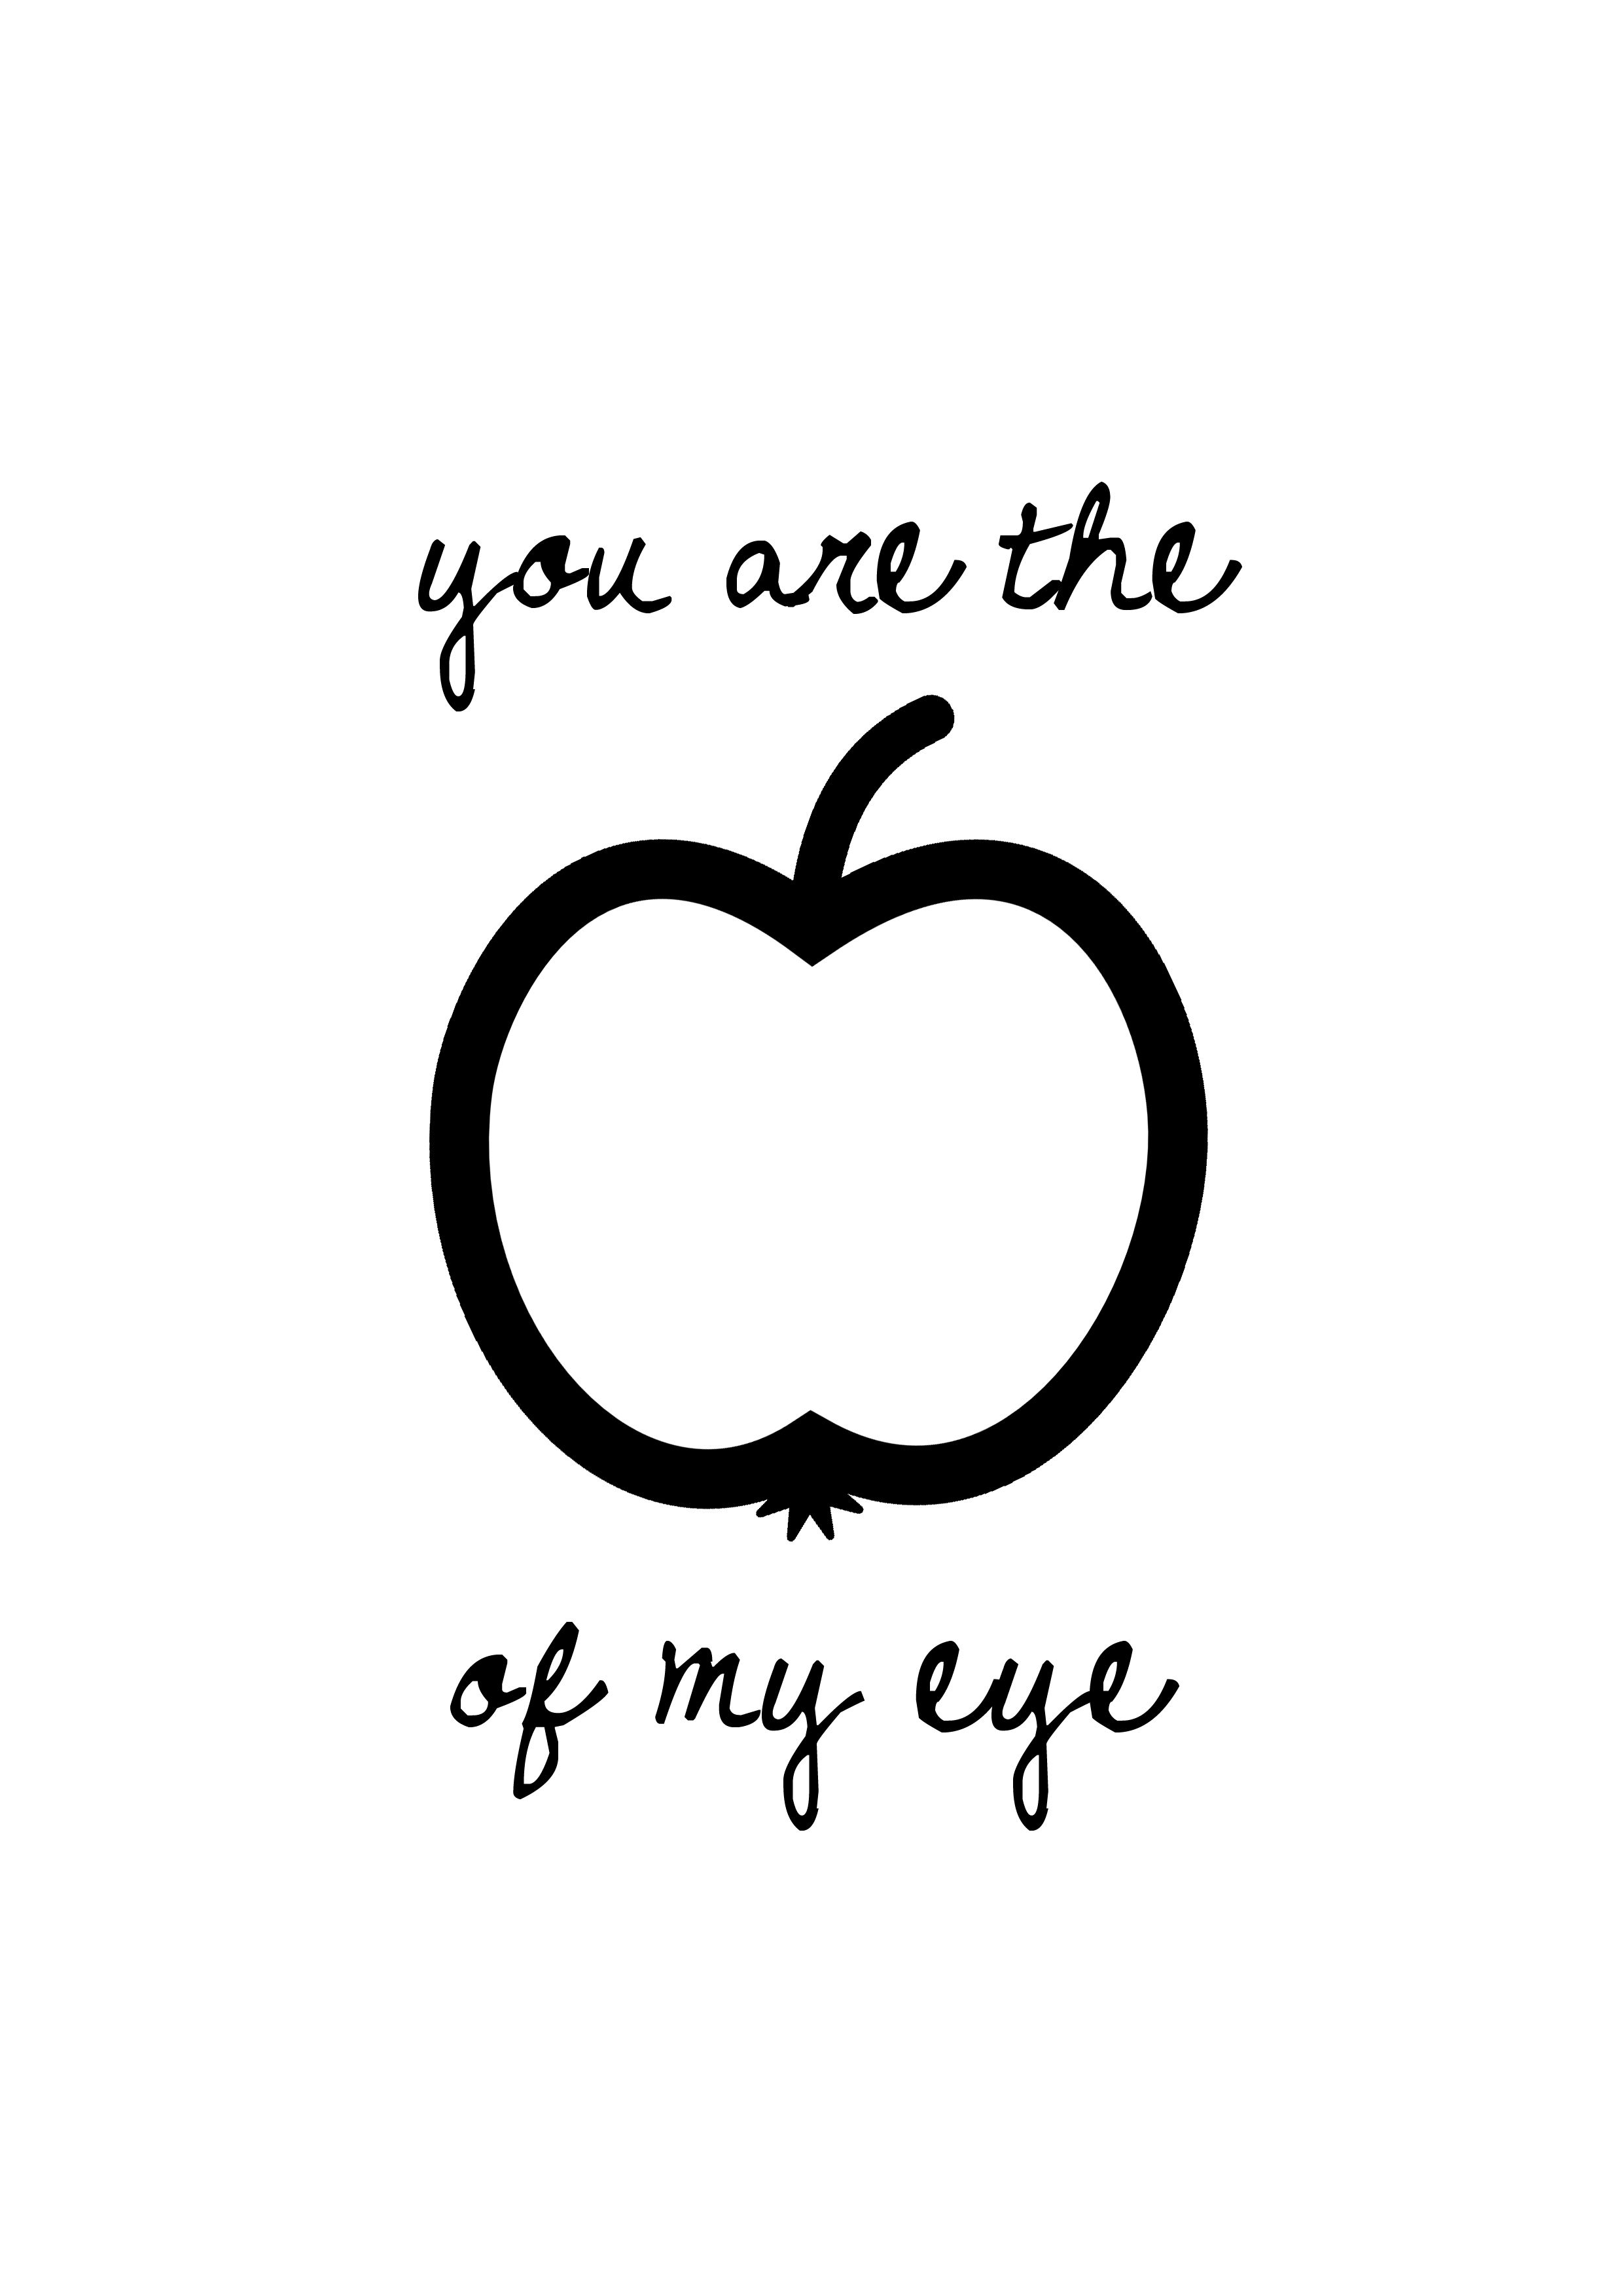 You are the apple of my eye. #quote #card Design by Ilse Boersma ...